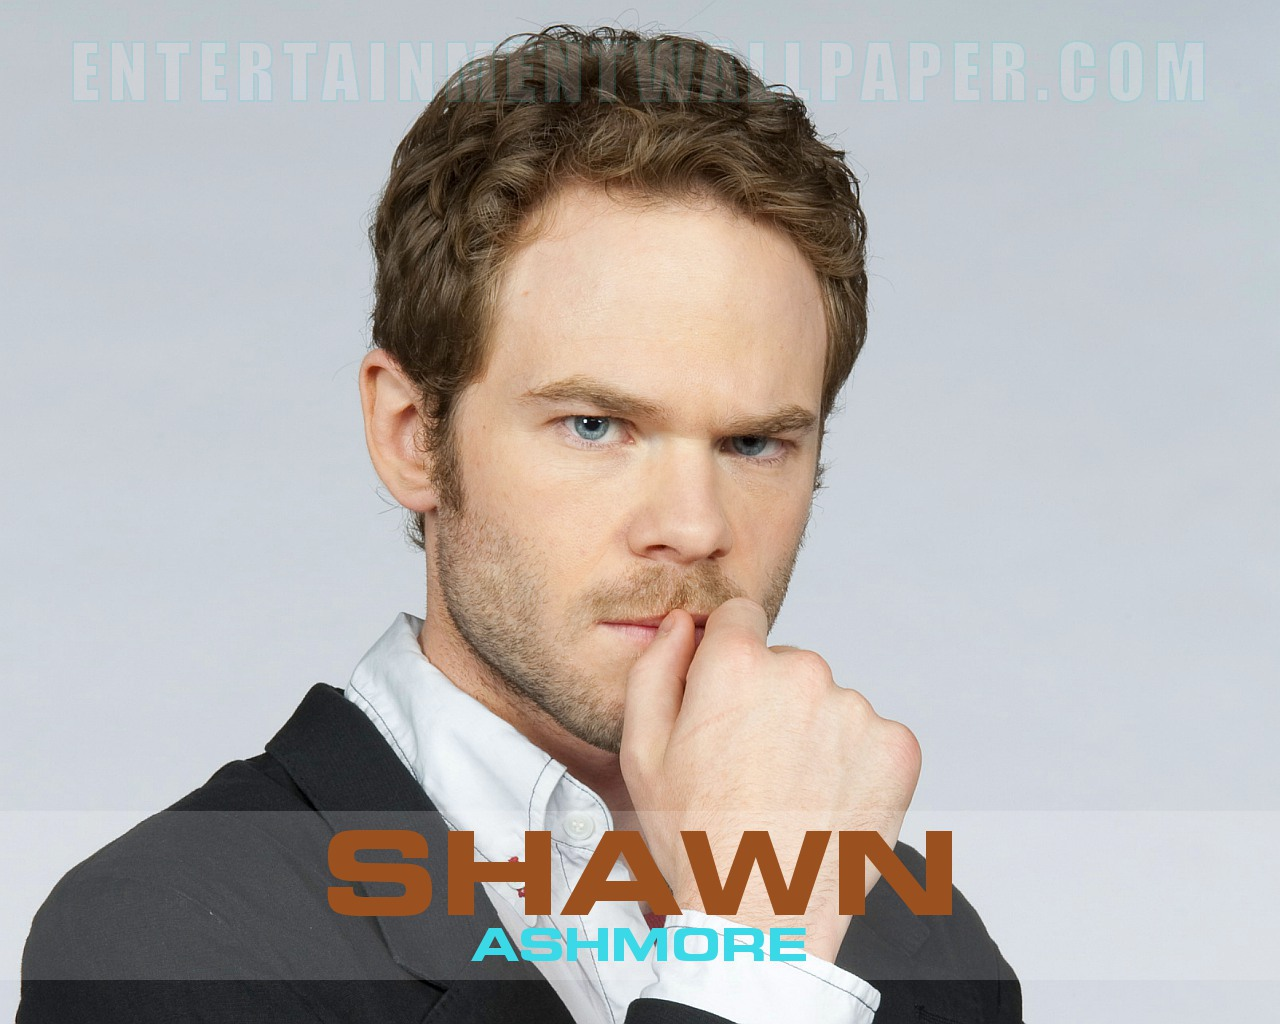 1280x1024 - Shawn Ashmore Wallpapers 4